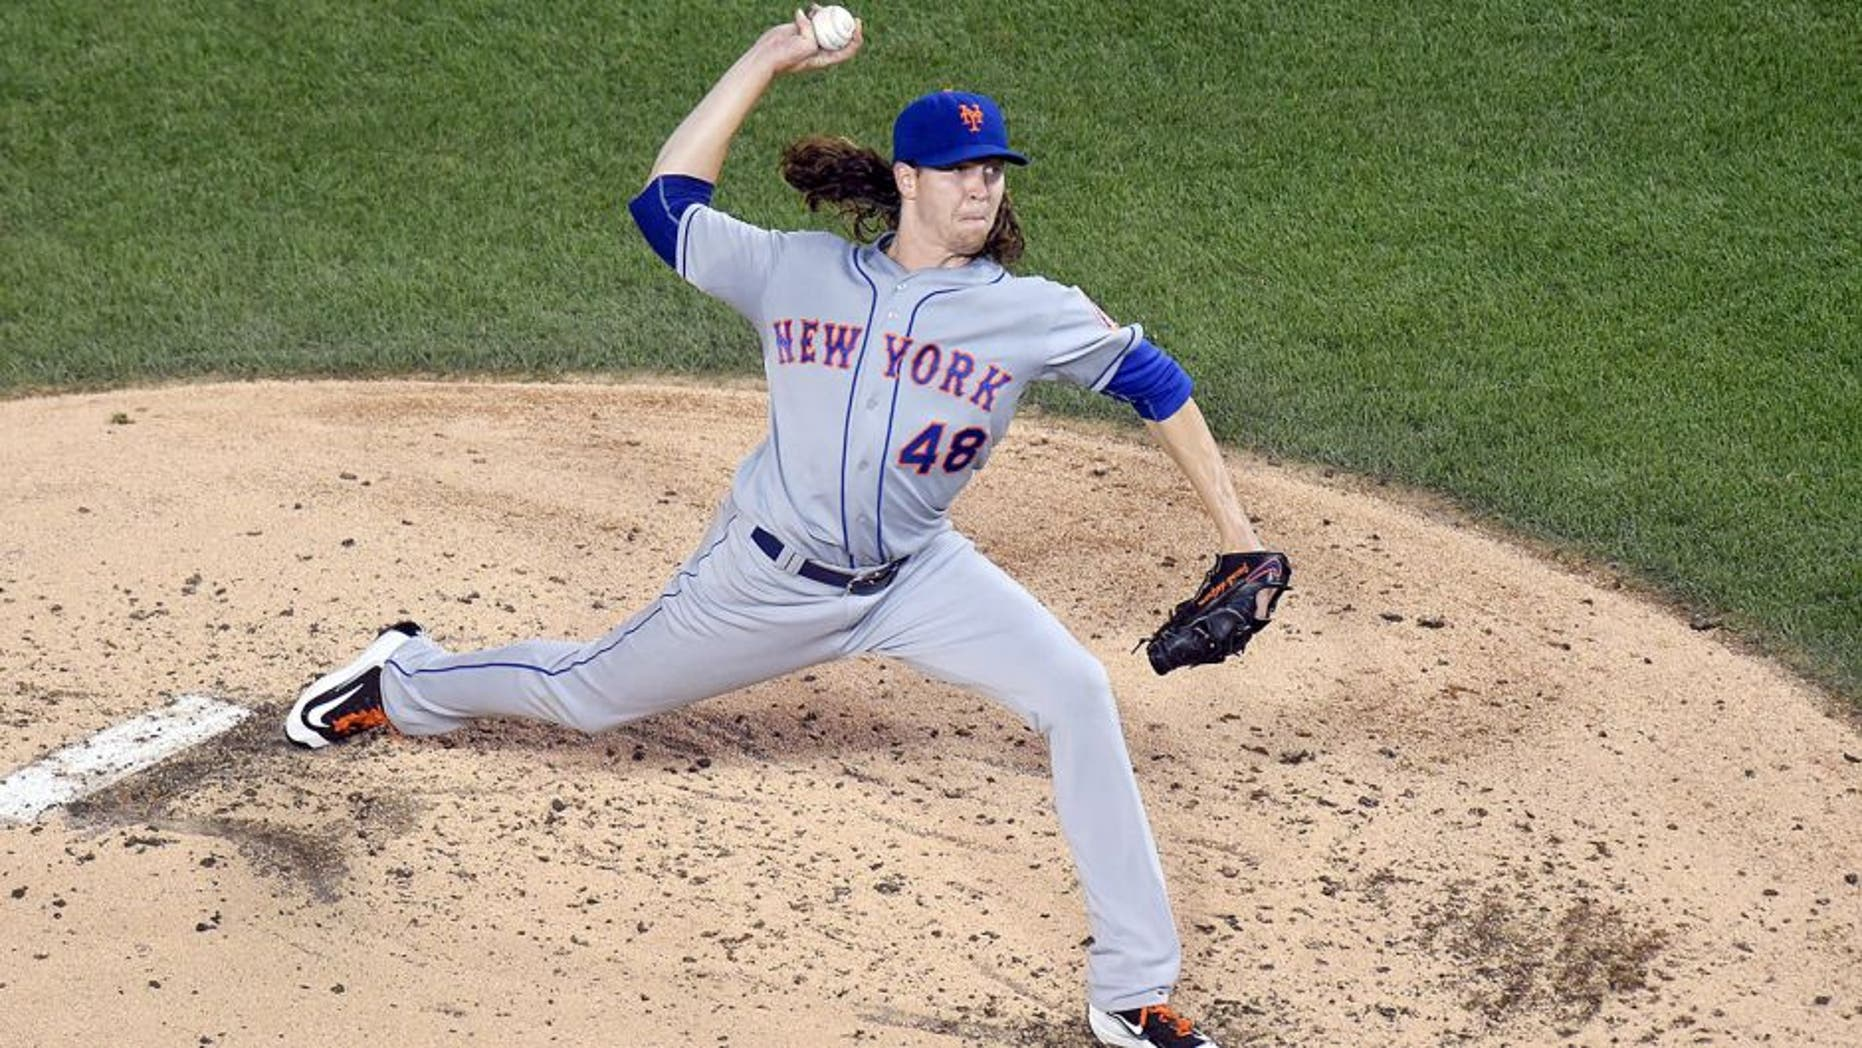 WASHINGTON, DC - SEPTEMBER 09: Jacob deGrom #48 of the New York Mets pitches in the second inning a baseball game against the Washington Nationals at Nationals Park on September 9, 2015 in Washington, DC. (Photo by Mitchell Layton/Getty Images)